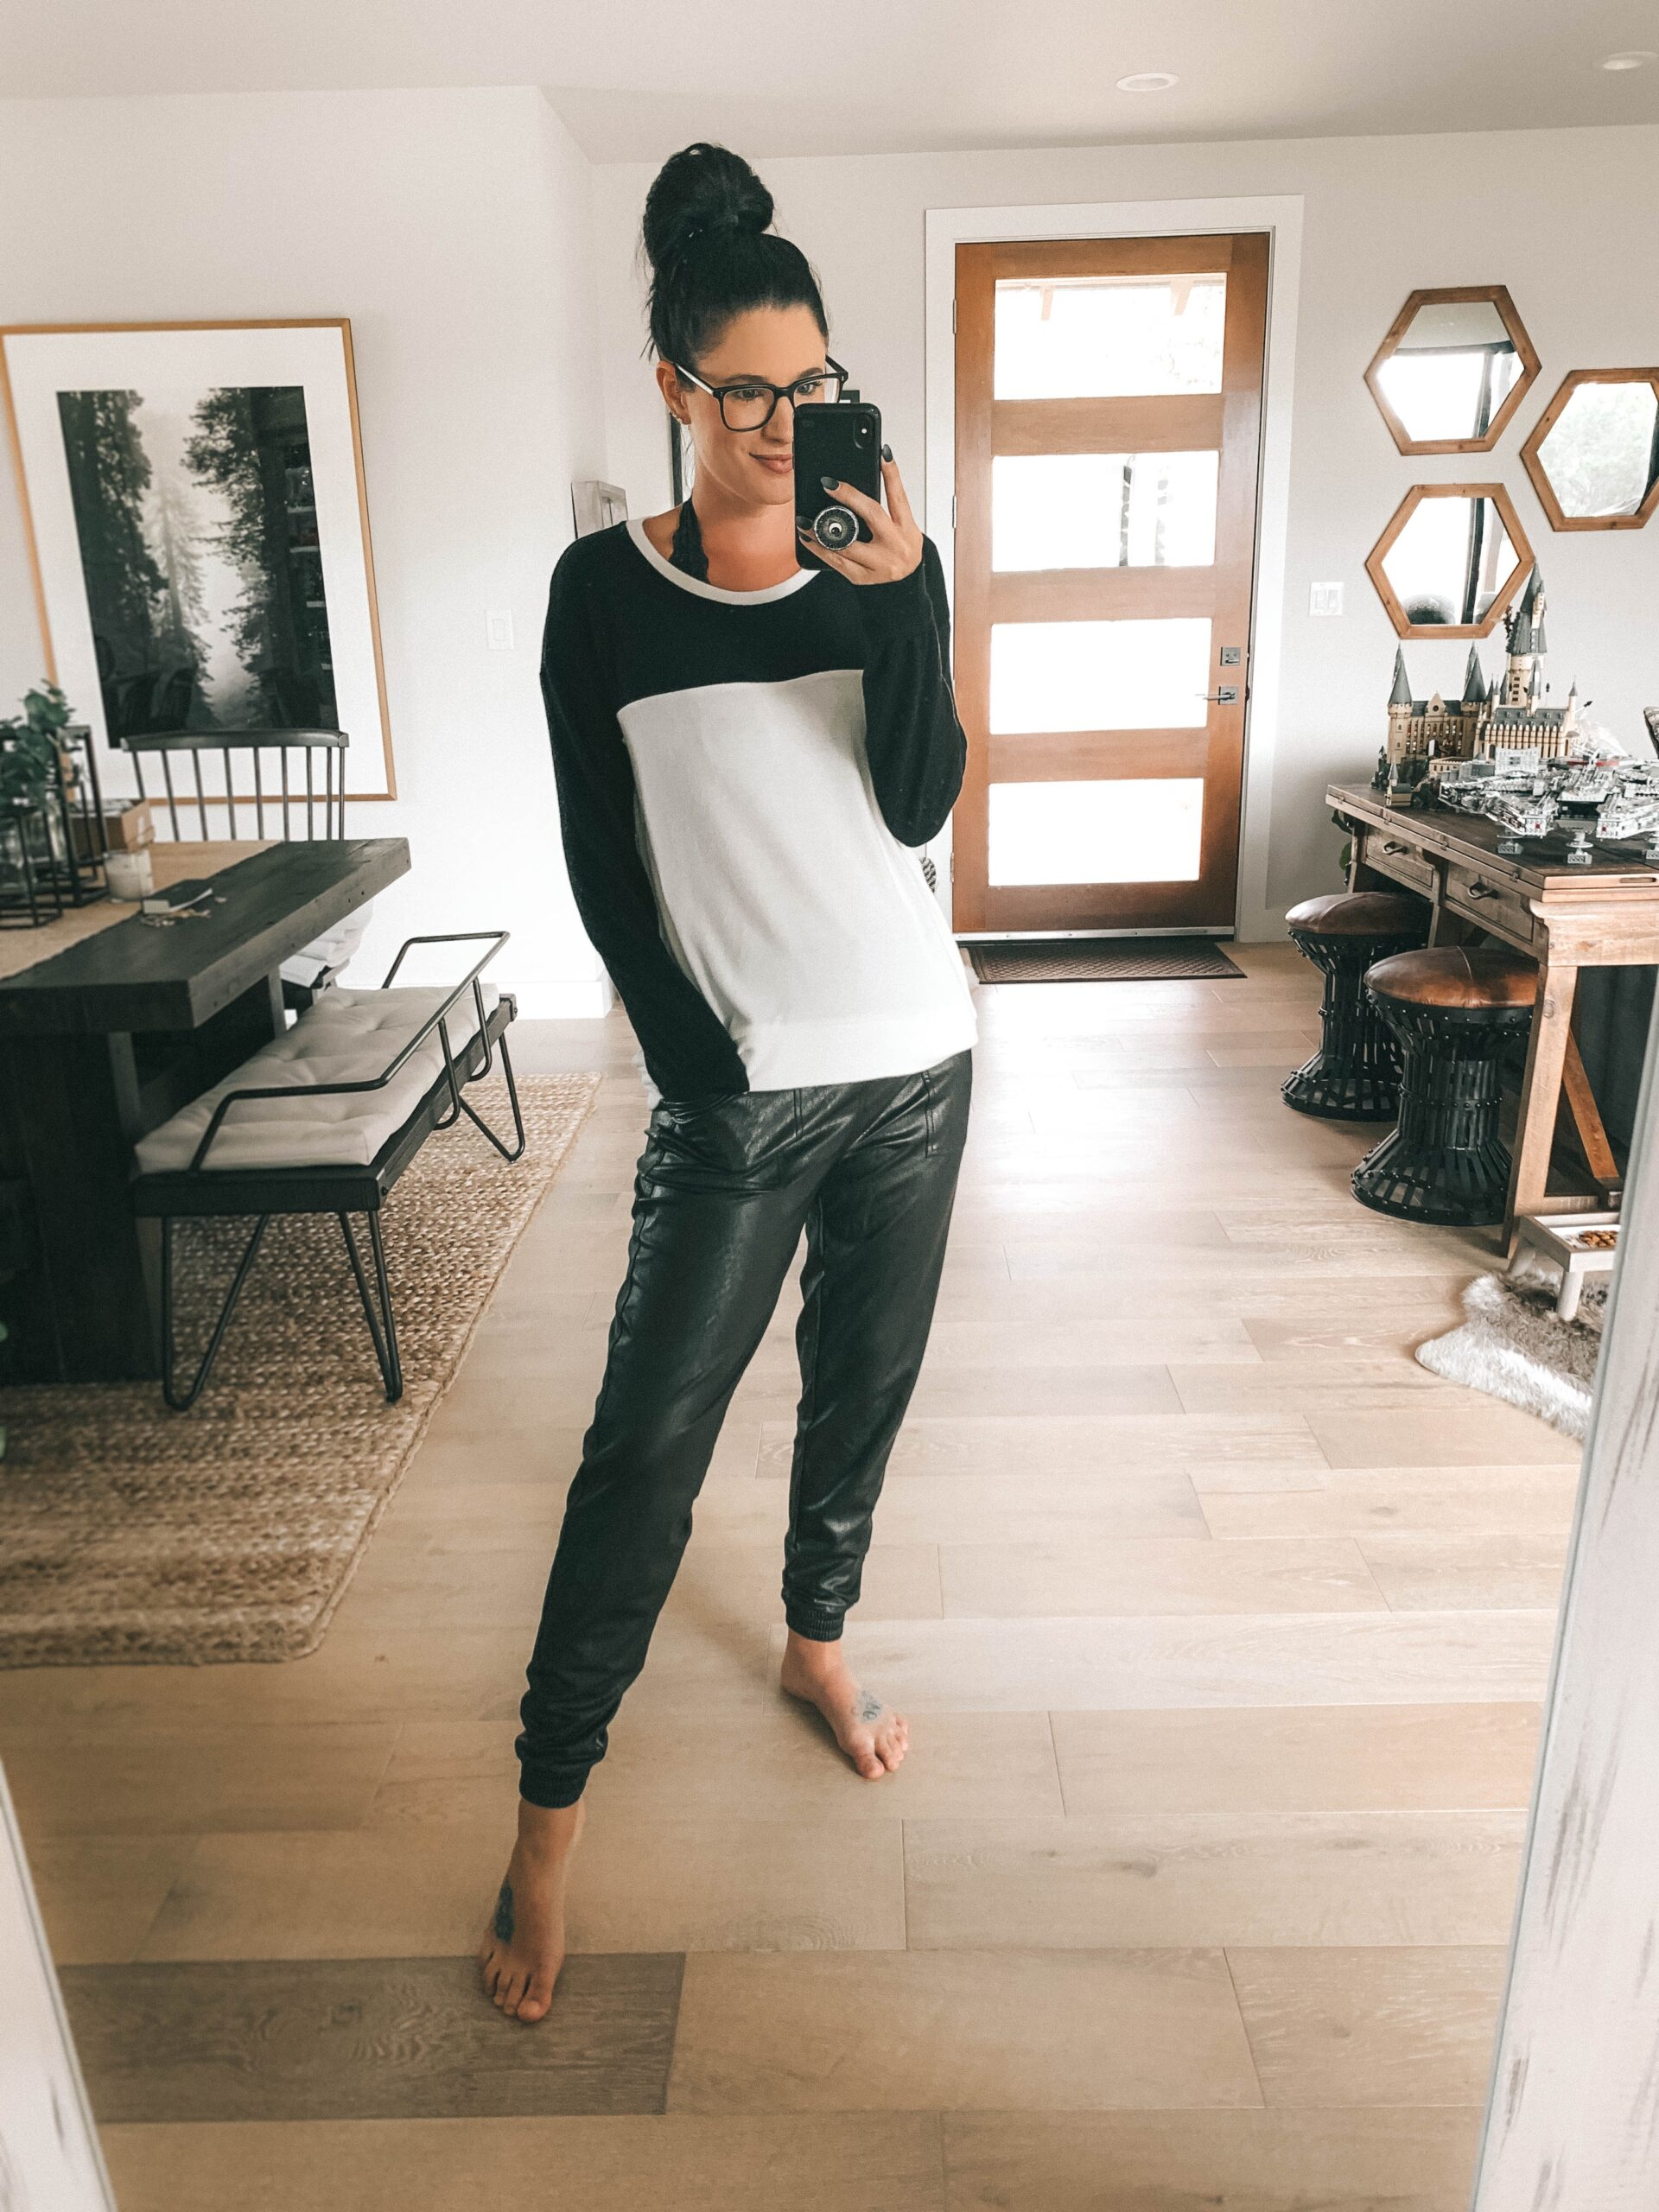 Nordstrom Anniversary Sale by popular Austin fashion blog, Dressed to Kill: image of a woman wearing a black and white color block shirt and black faux leather jogger pants.